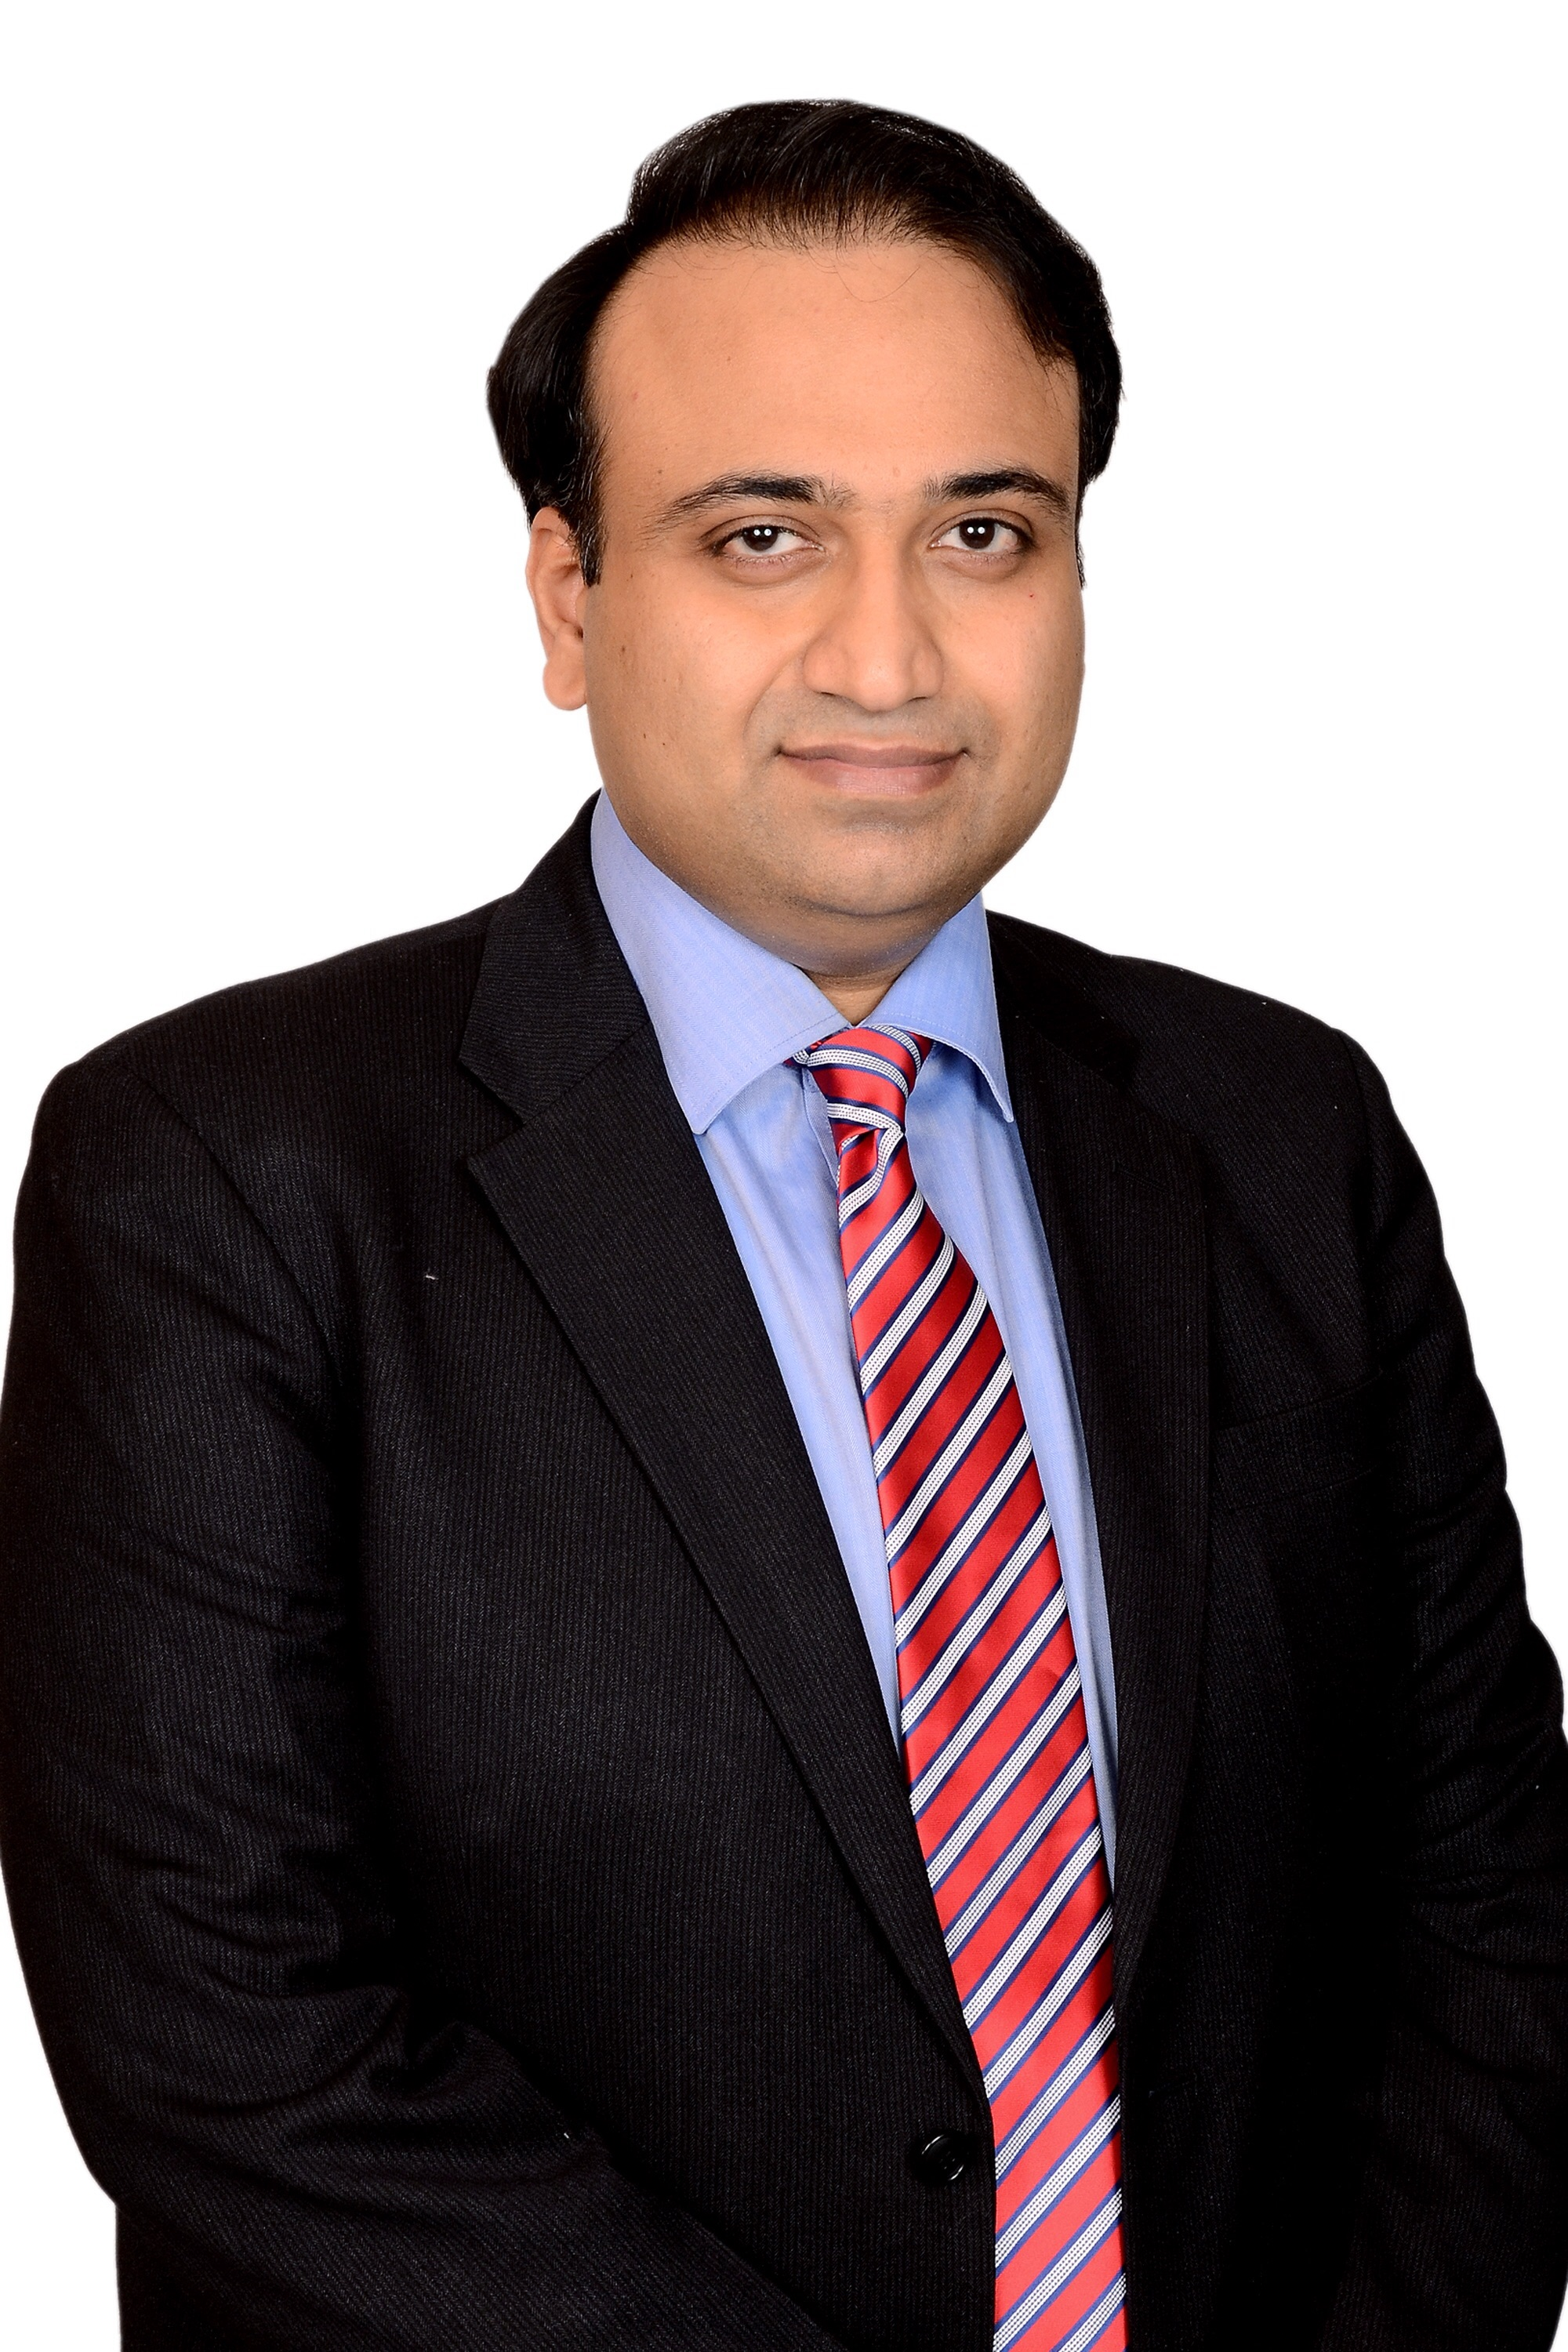 Dr. Rajat Ahluwalia - Laparoscopic Surgeon